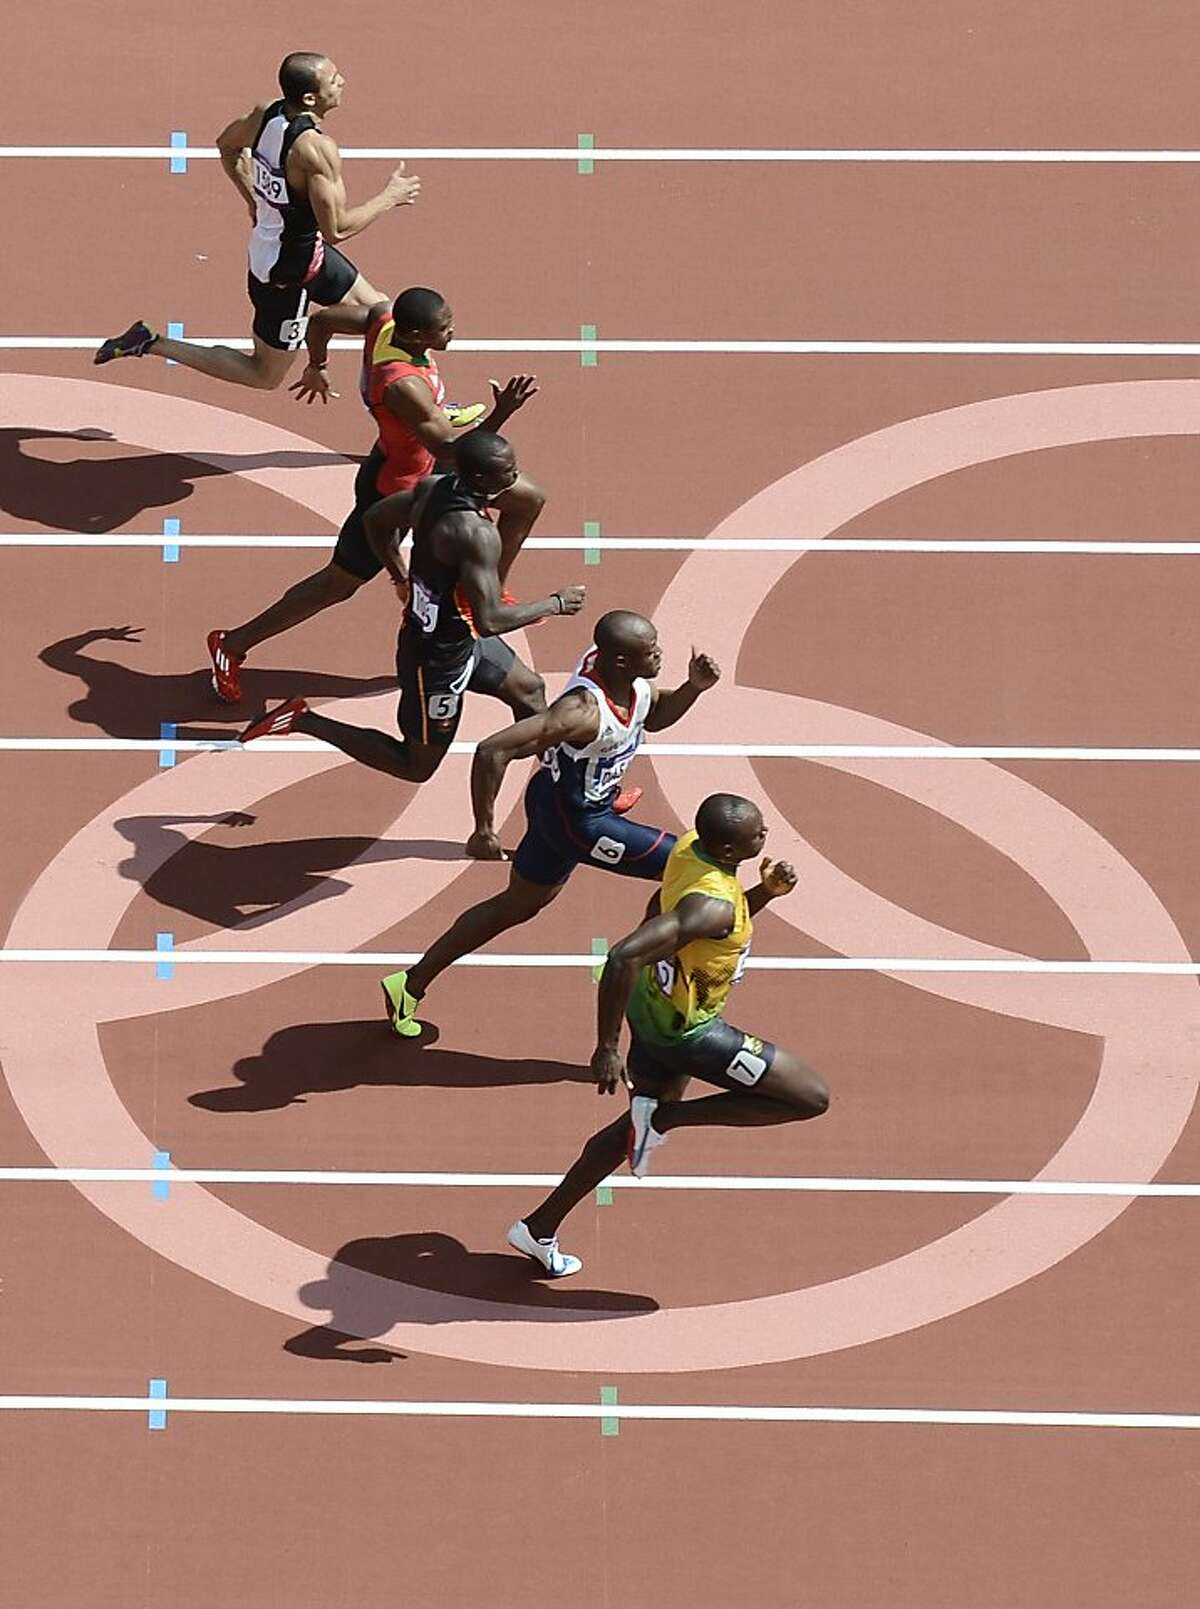 PICTURE TAKEN WITH A ROBOTIC CAMERA (From bottom) Jamaica's Usain Bolt, Britain's James Dasaolu, Antigua and Barbuda's Daniel Bailey and Saint Kitts & Nevis' Jason Rogers, Egypt's Amr Ibrahim Mostafa Seoud and Guinea-Bissau's Holder da Silva compete in the men's 100m heats at the athletics event of the London 2012 Olympic Games on August 4, 2012 in London. AFP PHOTO / ANTONIN THUILLIERANTONIN THUILLIER/AFP/GettyImages